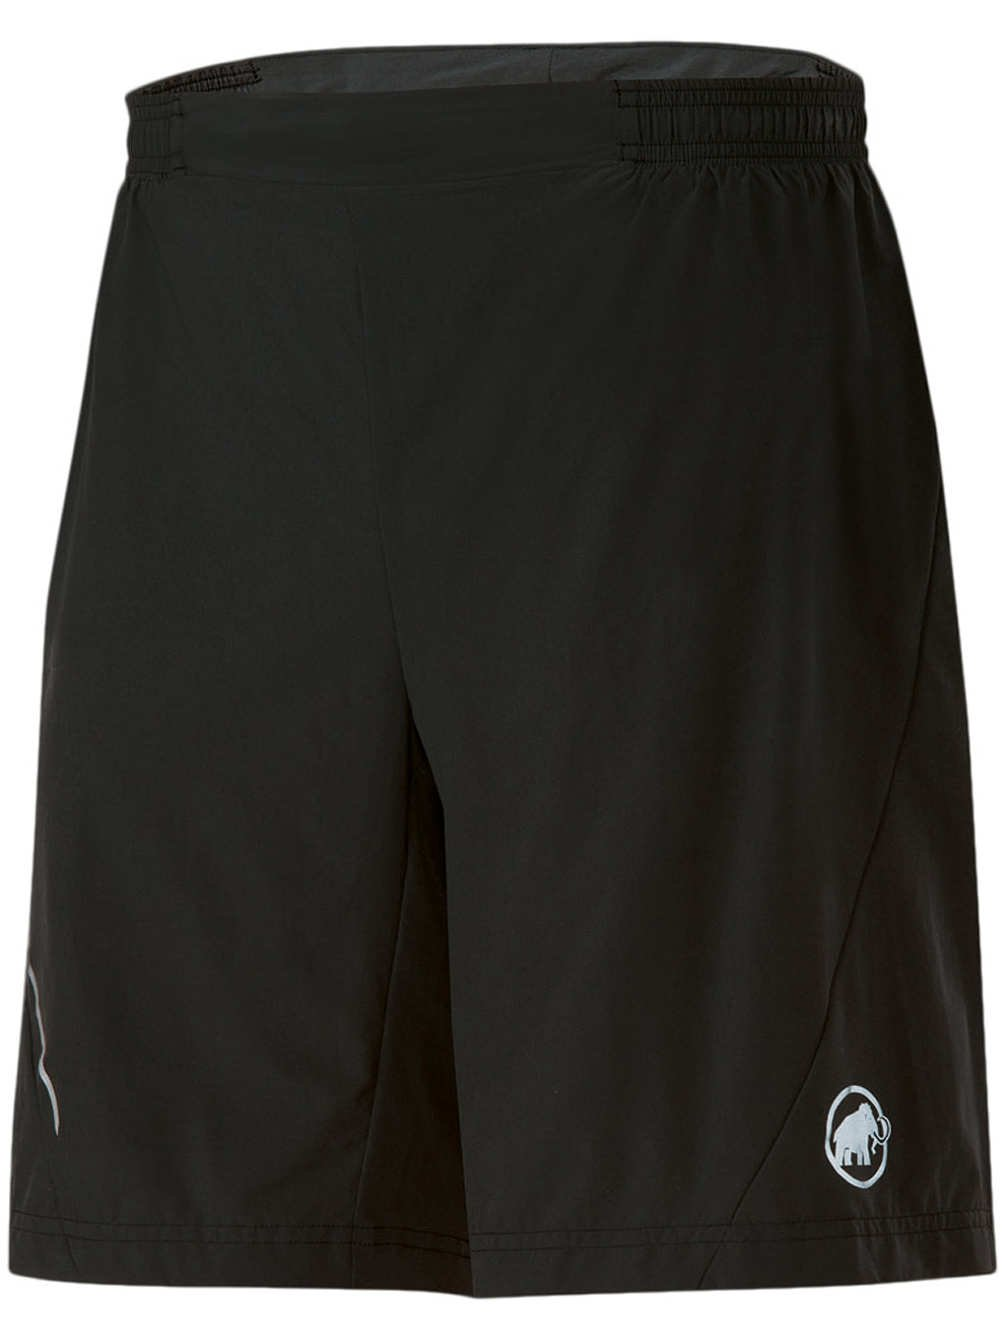 Mammut MTR 201 Tech Shorts Men - Laufshorts mit Tight